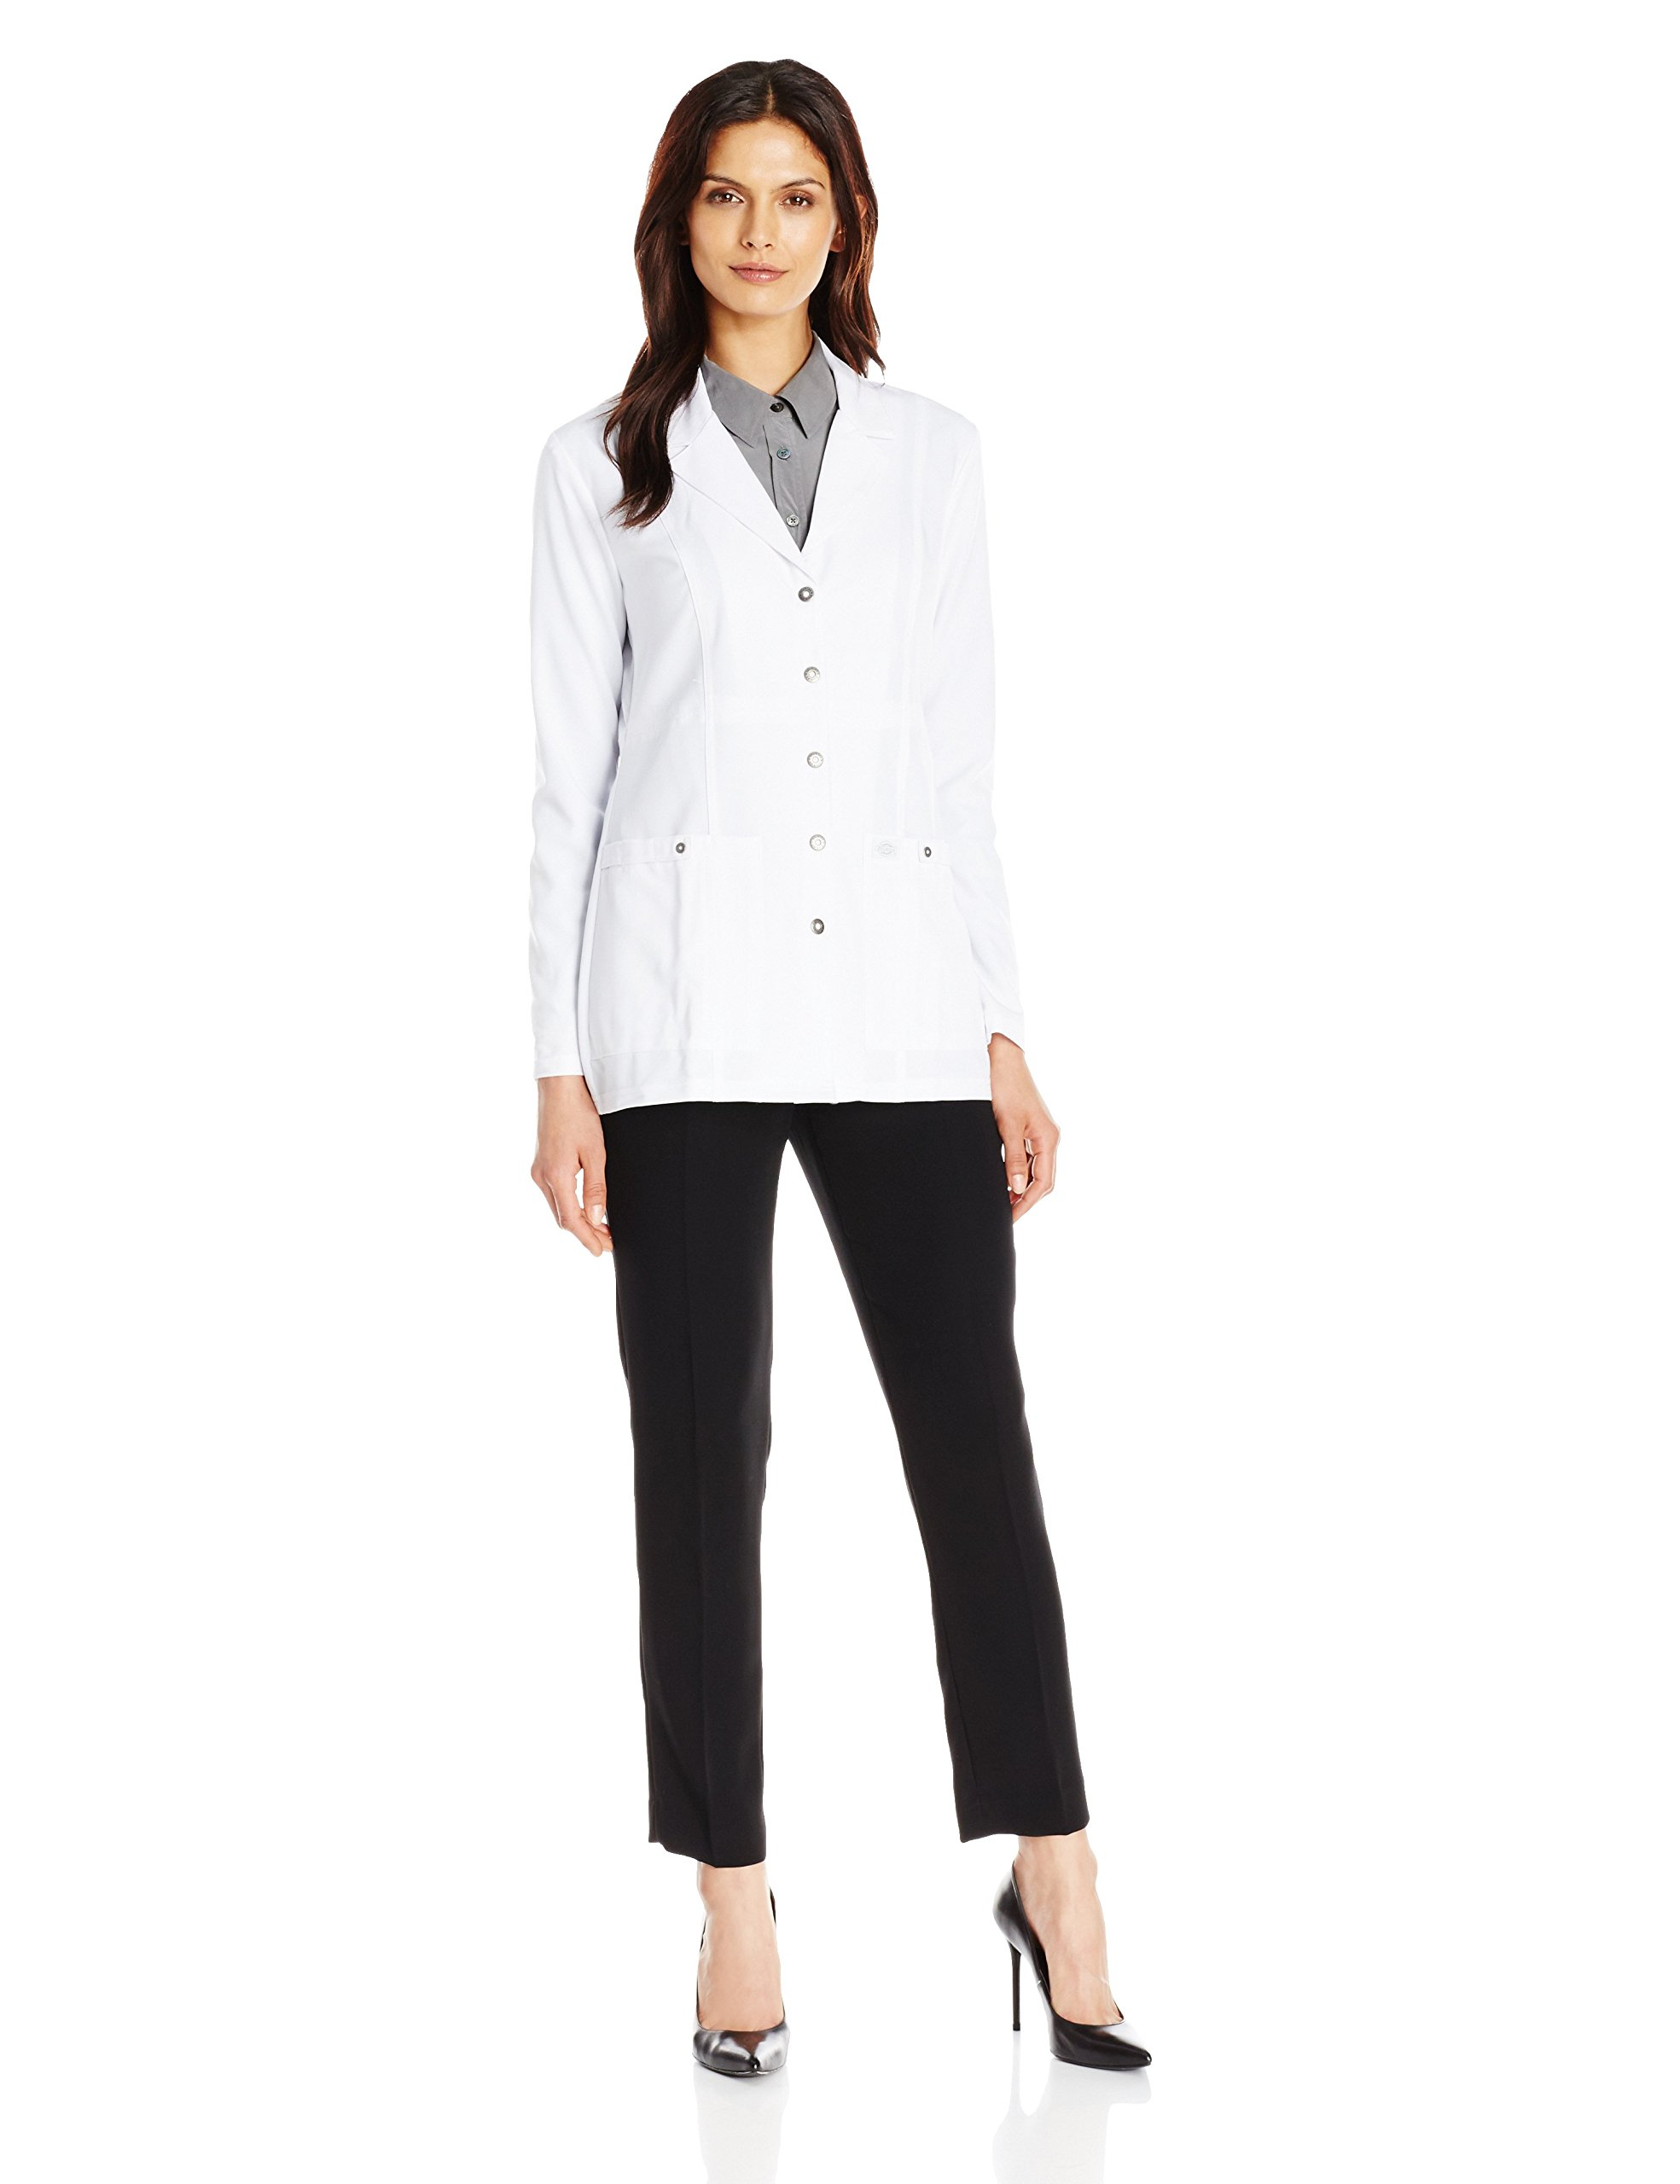 Dickies Women's Xtreme Stretch 28 inch Snap Front Lab Coat, White, Medium